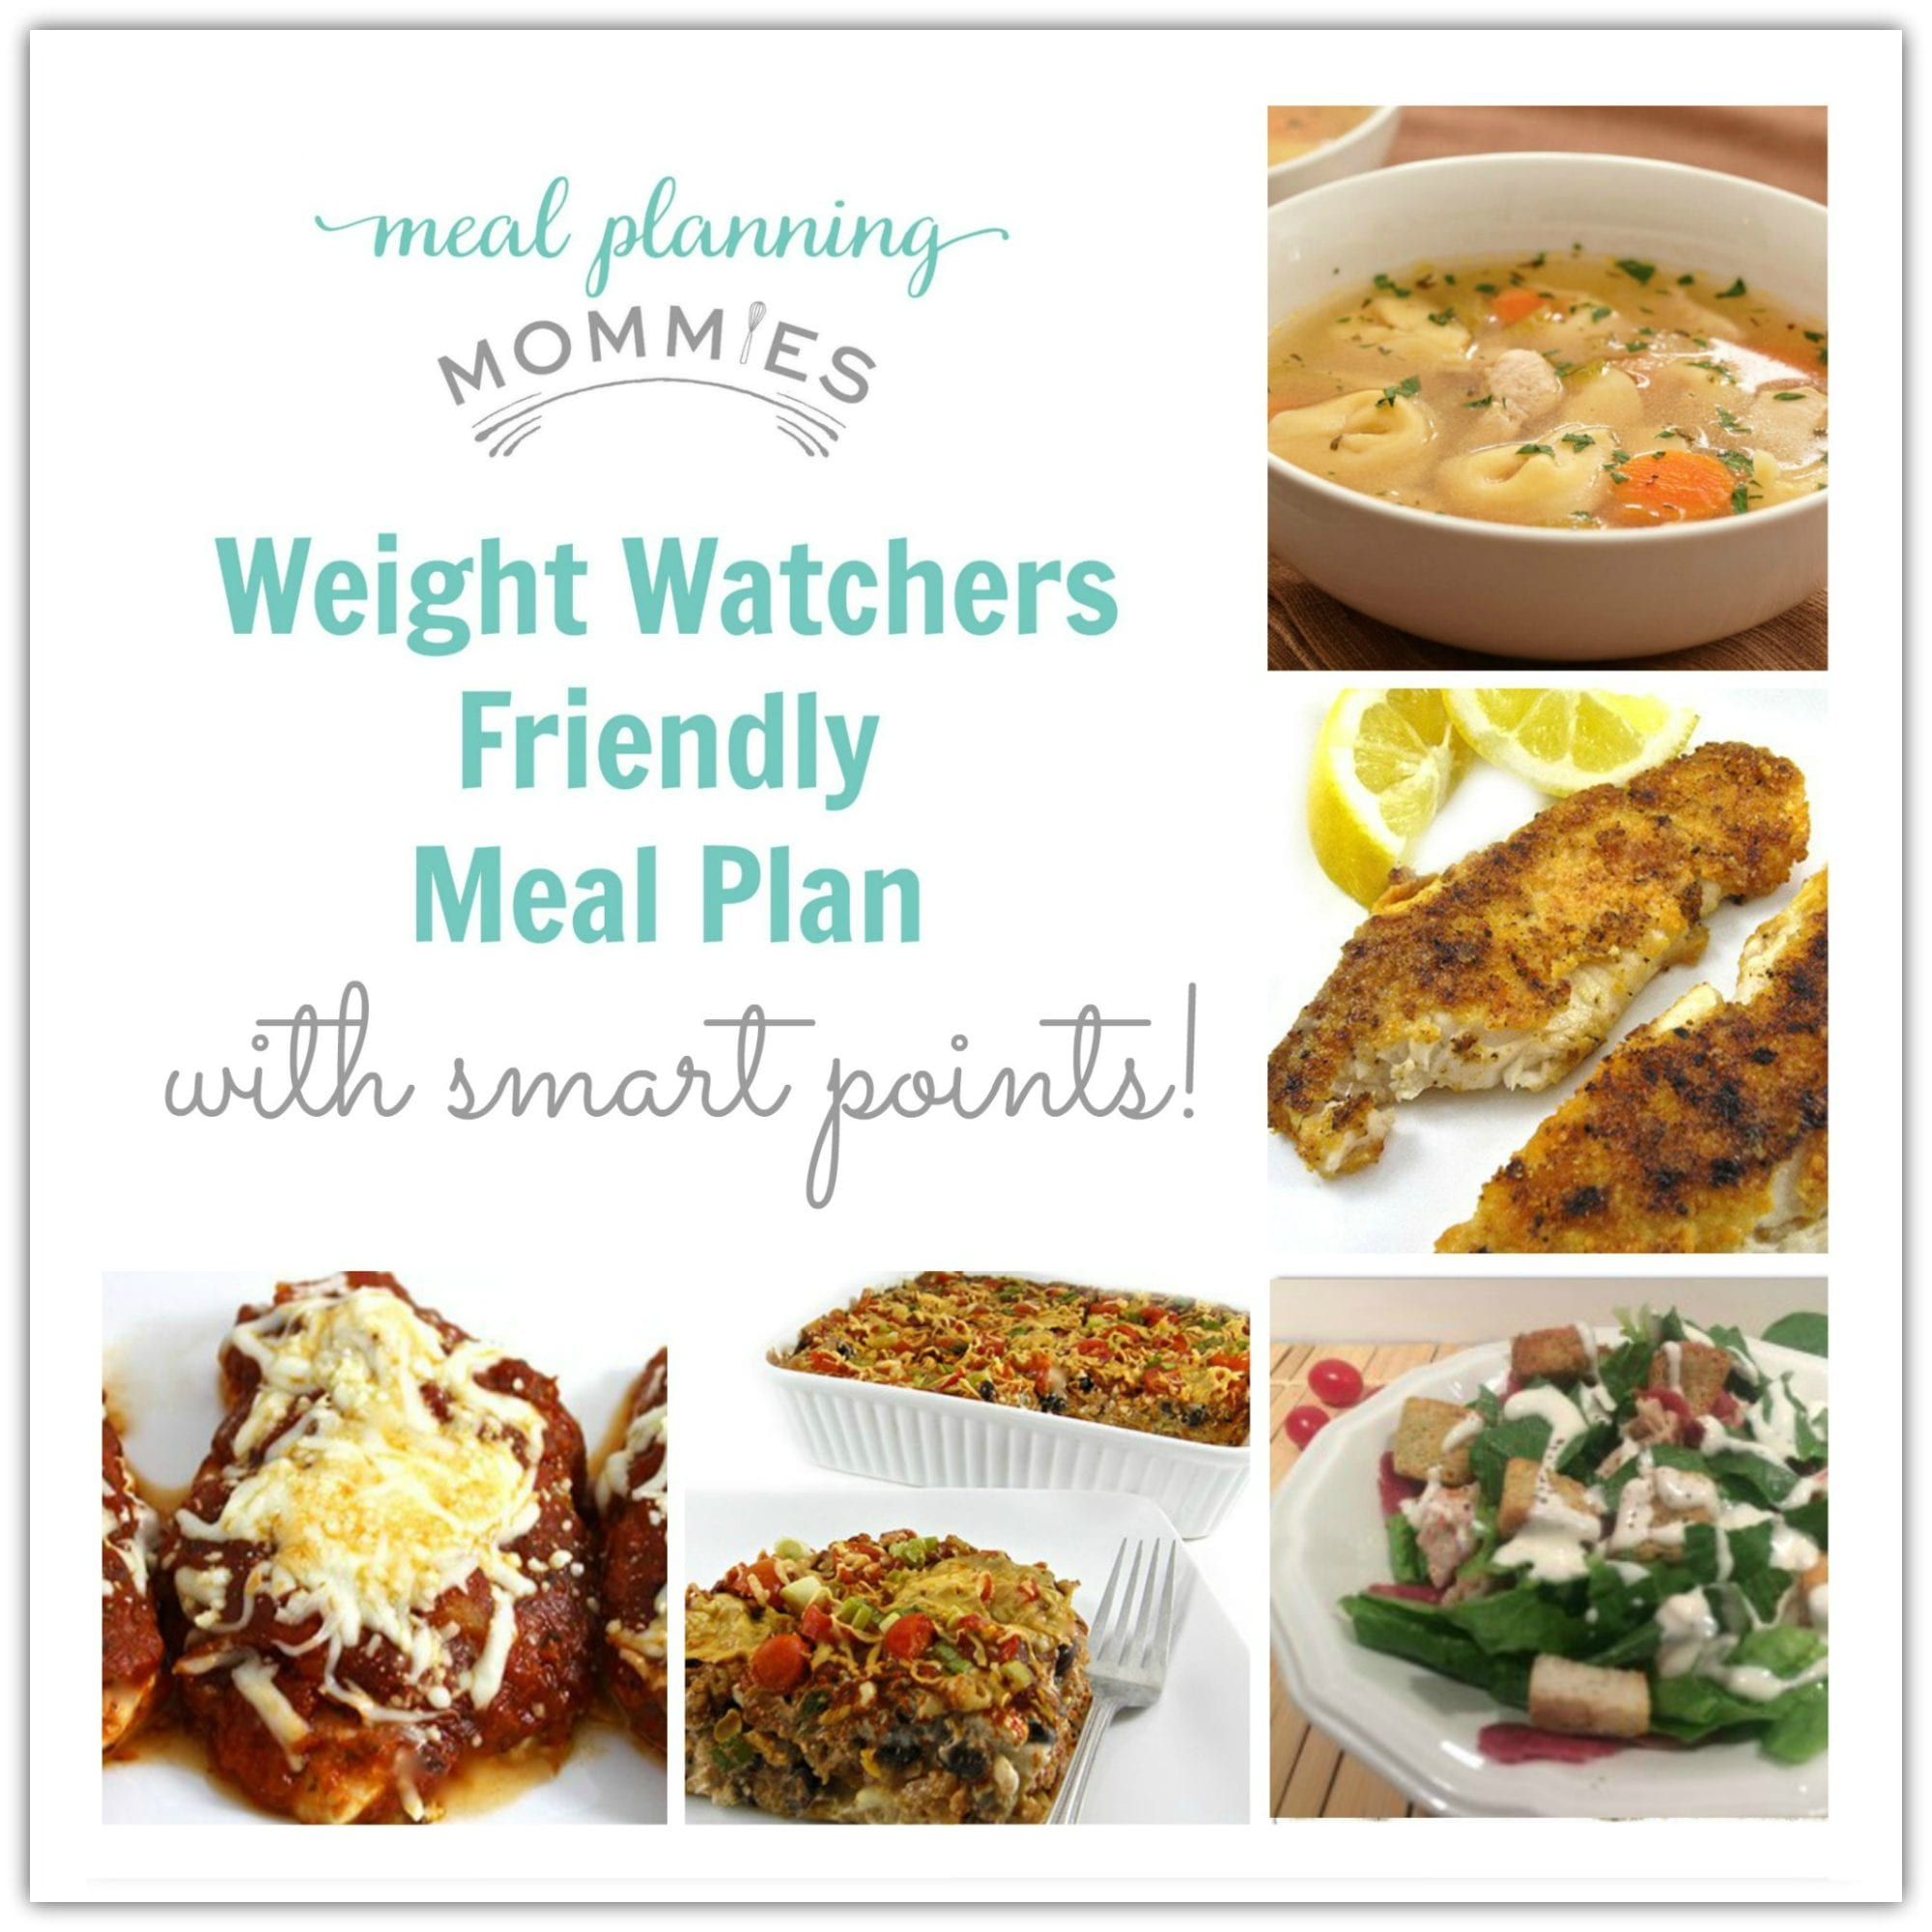 Weight Watcher Friendly Meal Plan With Smart Points 4